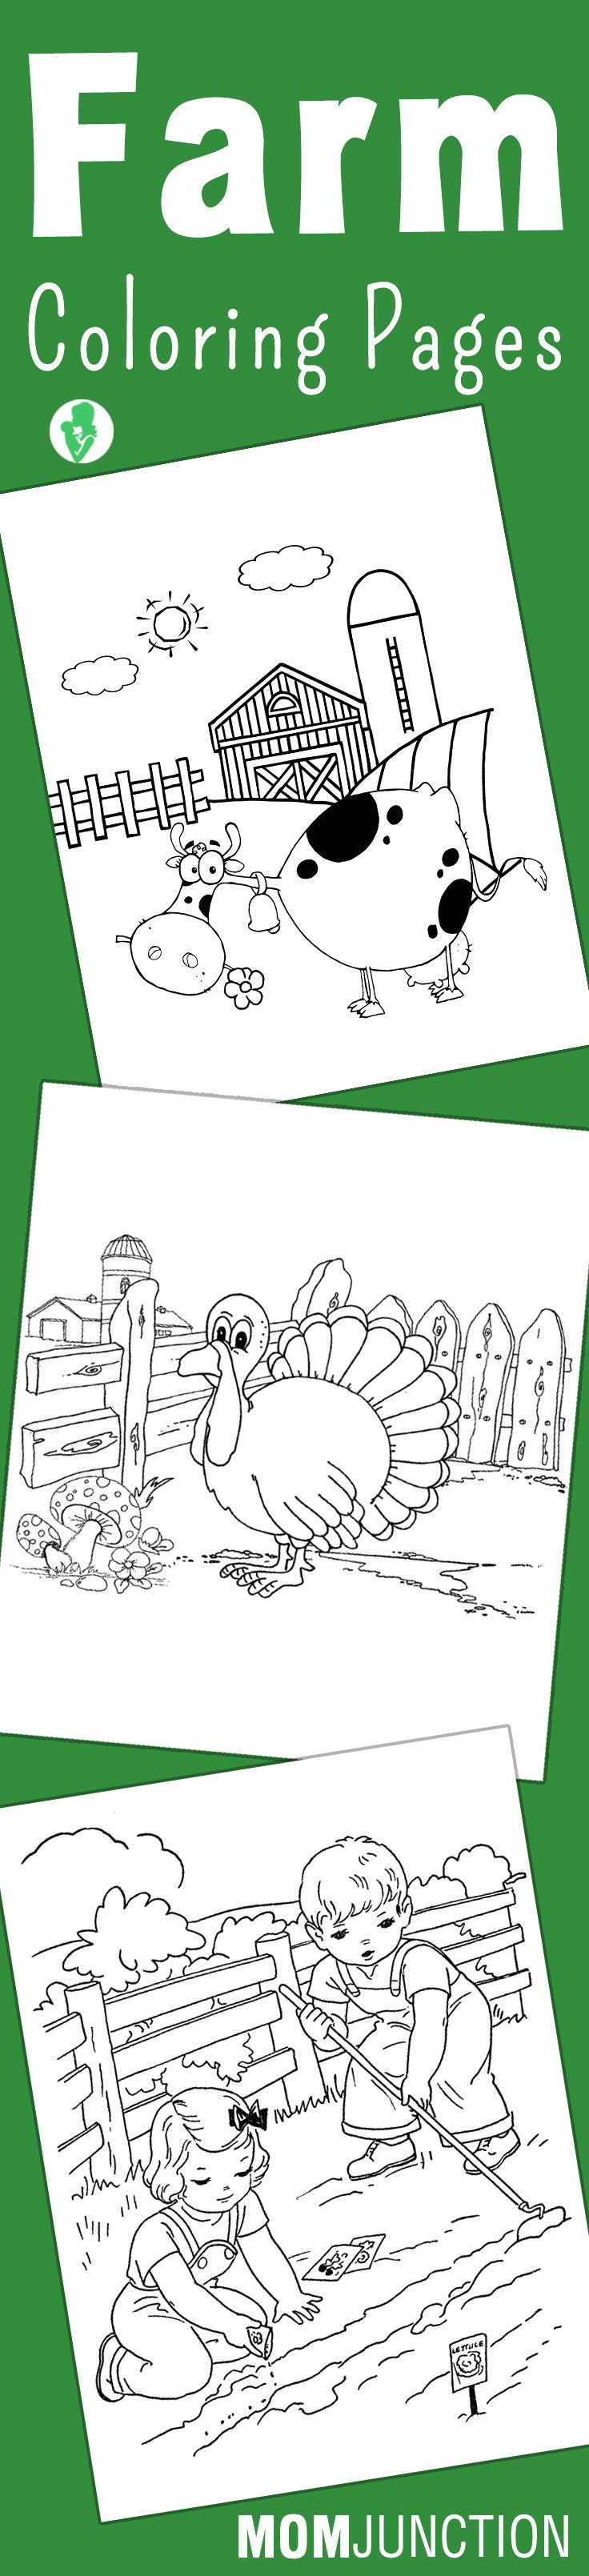 Top 10 Farm Coloring Pages Your